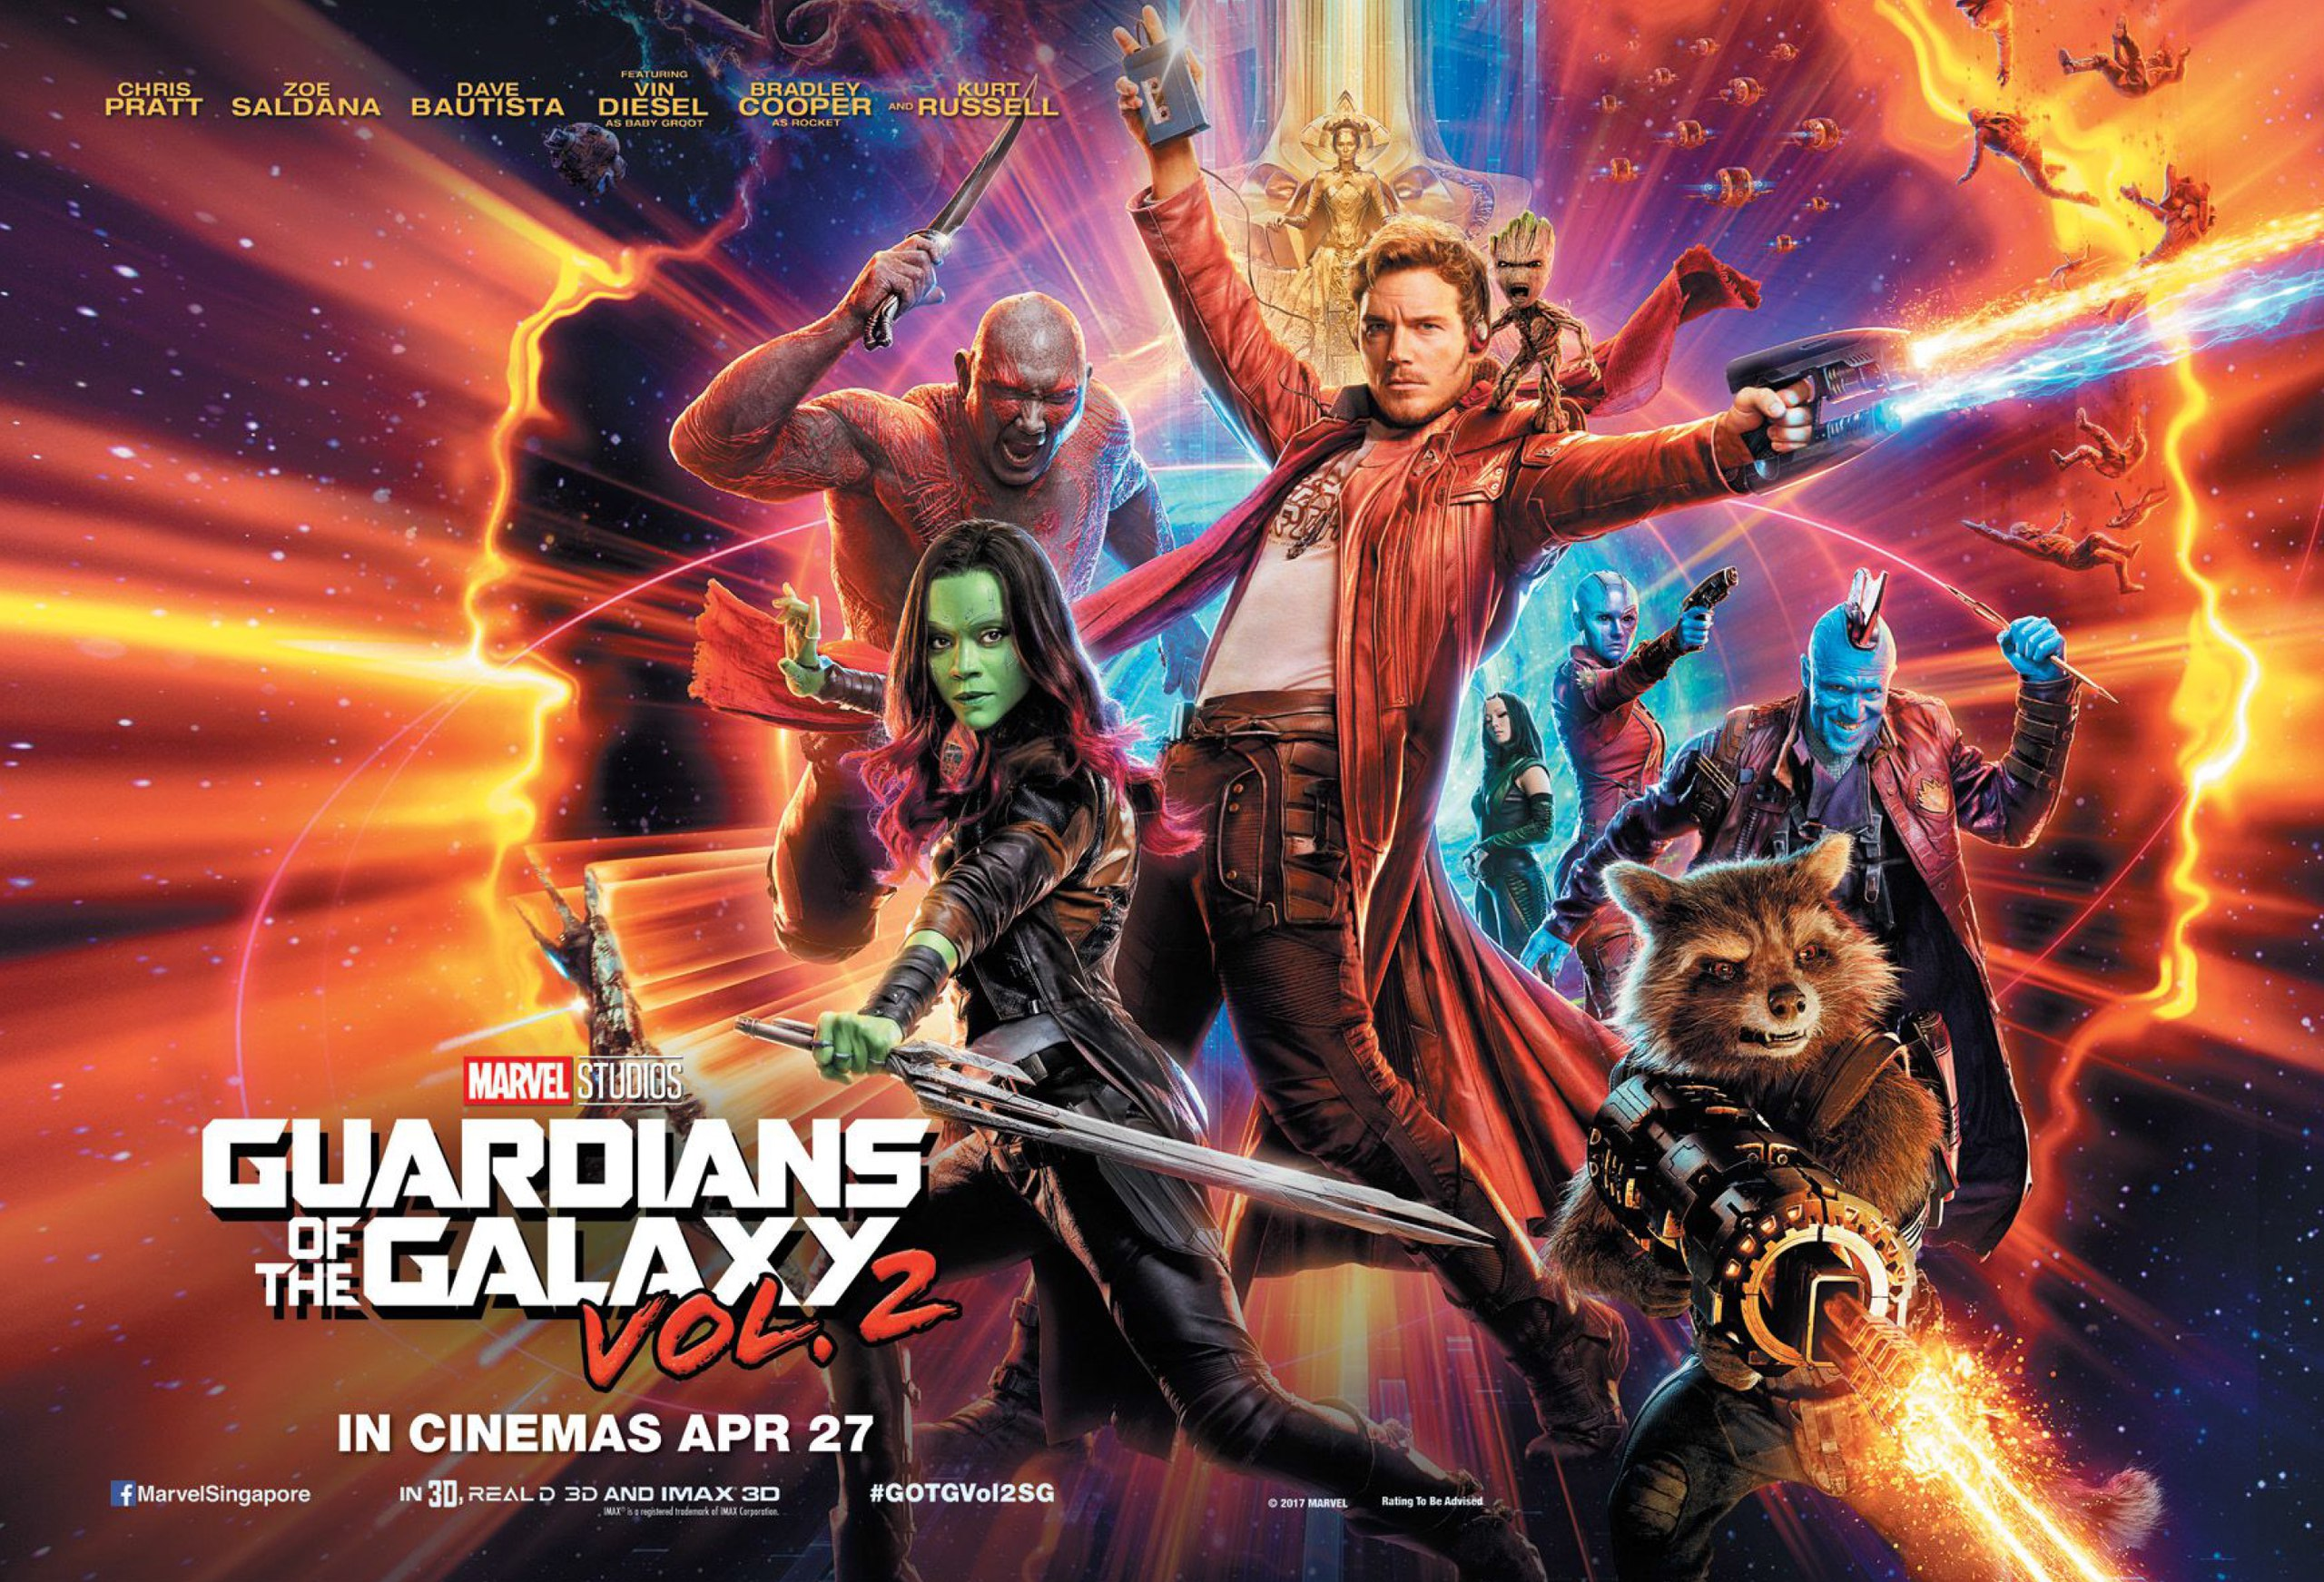 فيلم الاكشن Guardians of the Galaxy Vol. 2 2017 مترجم ( HD All BluRay )